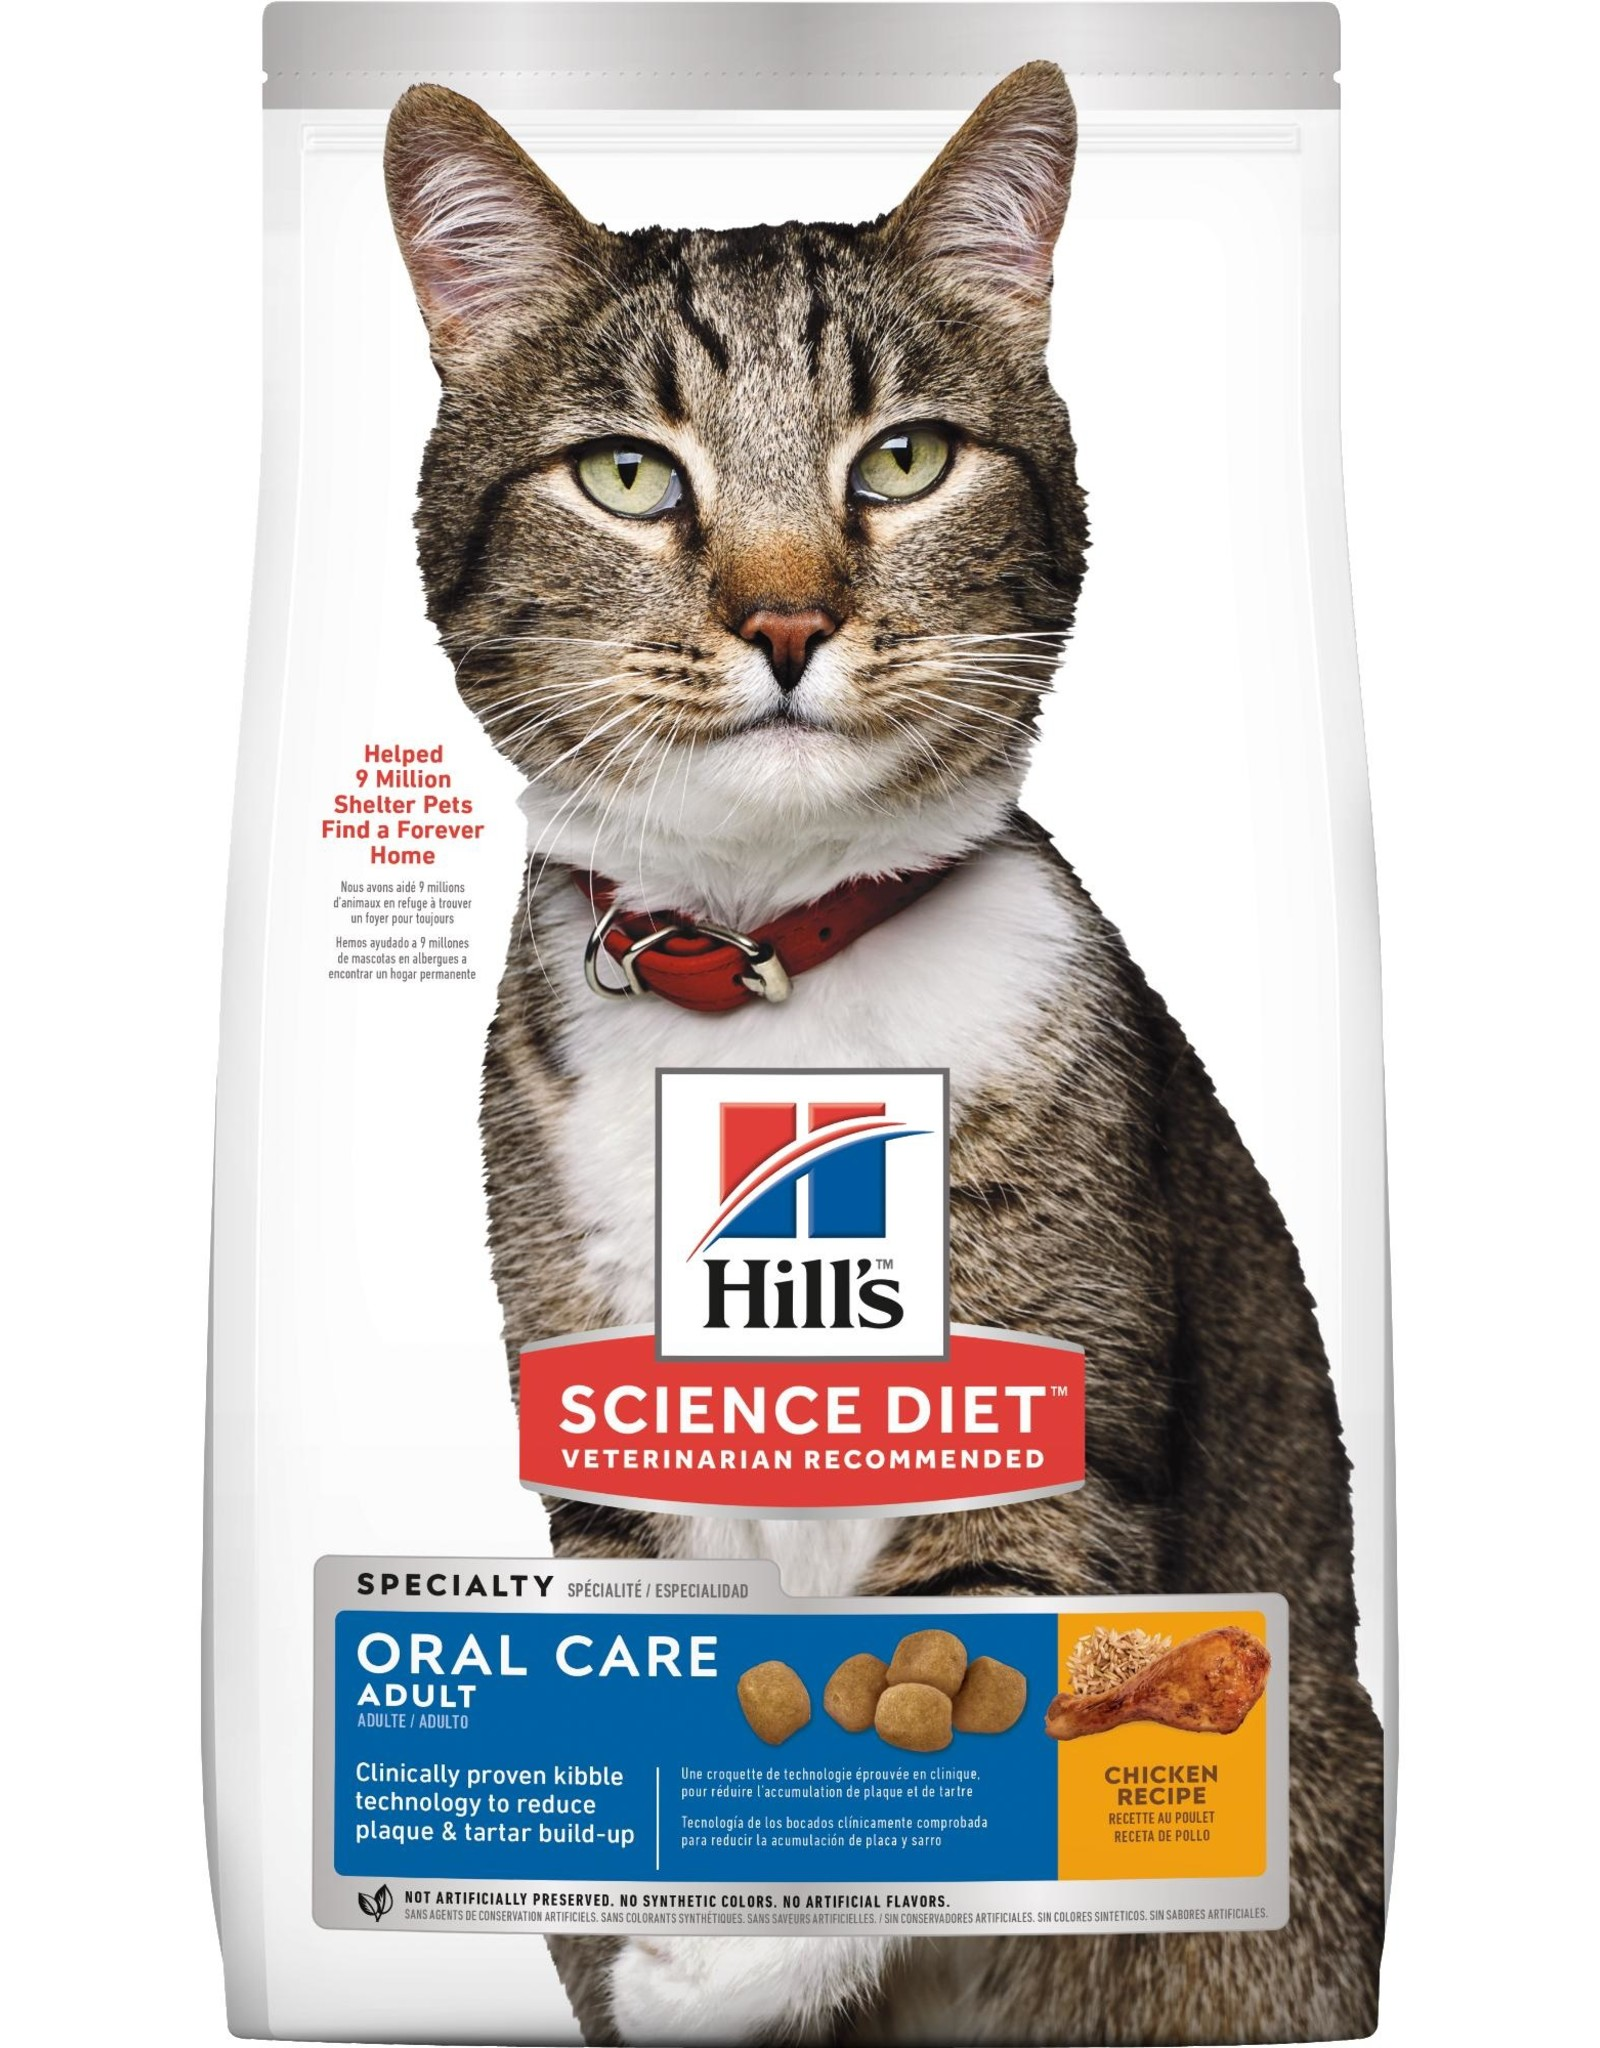 Hill's Science Diet Hill's Science Diet Feline Oral Care 3.5lb